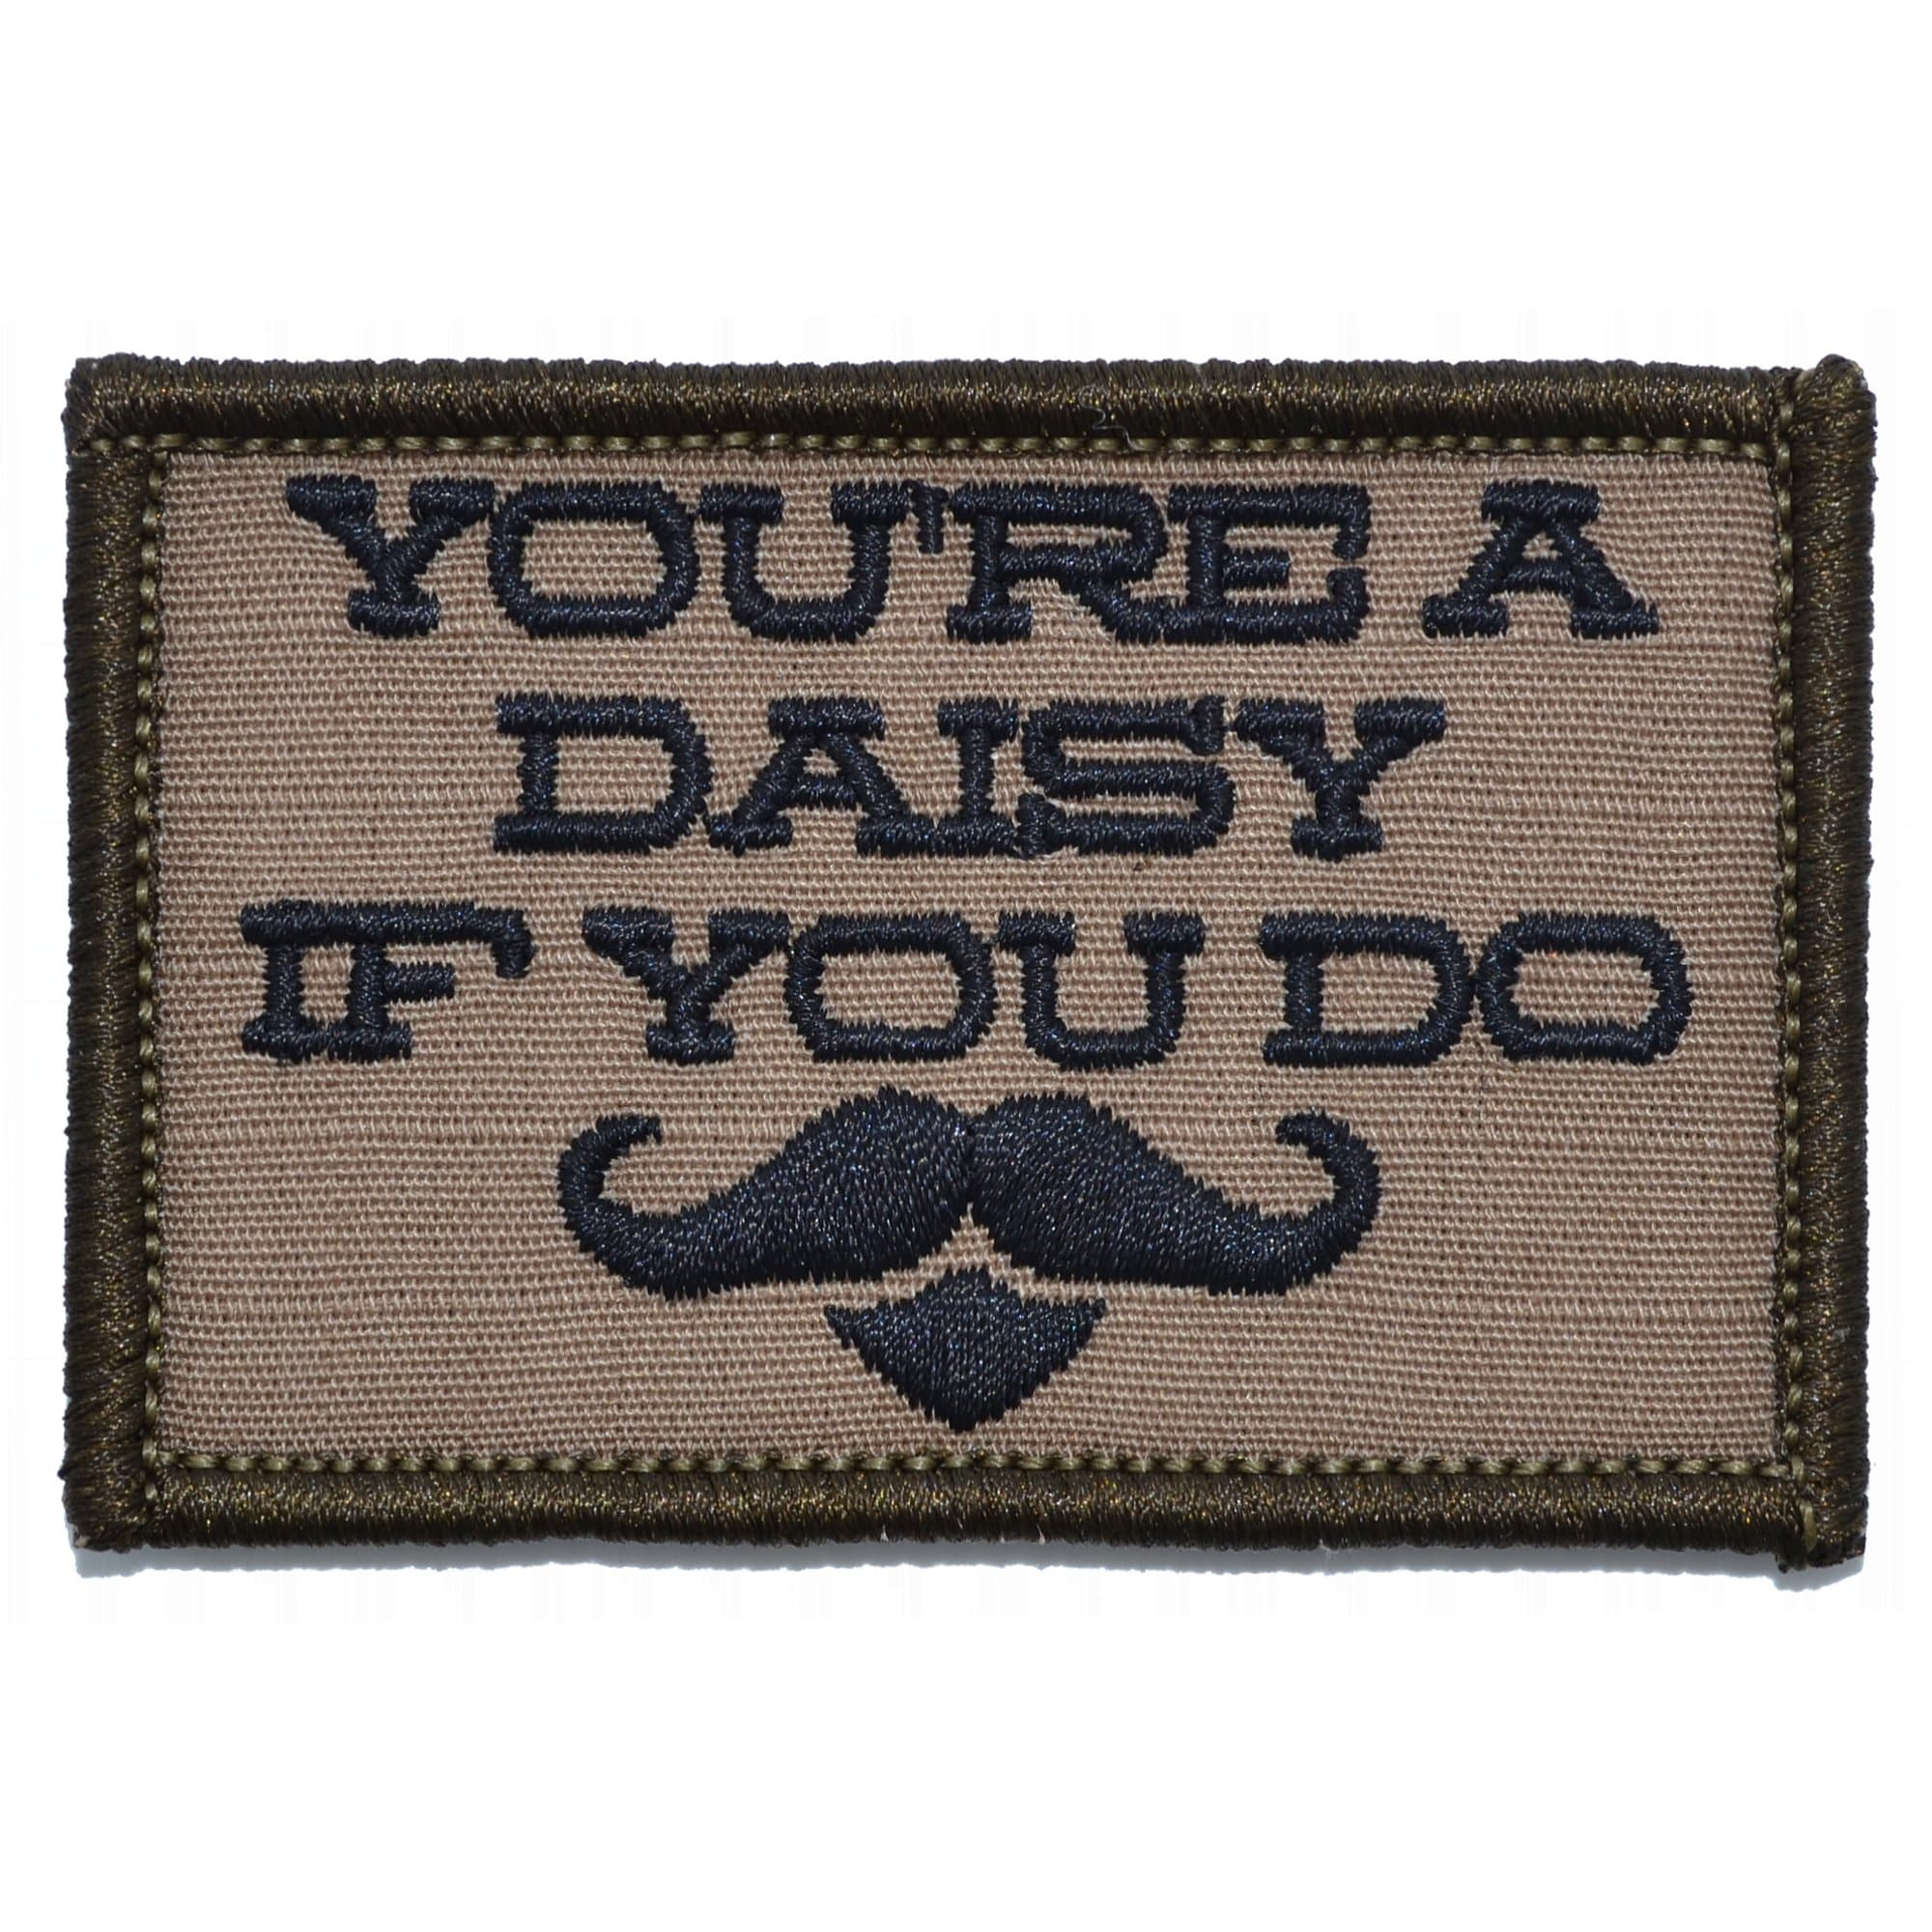 You're A Daisy If You Do, Doc Holiday Quote - 2x3 Patch